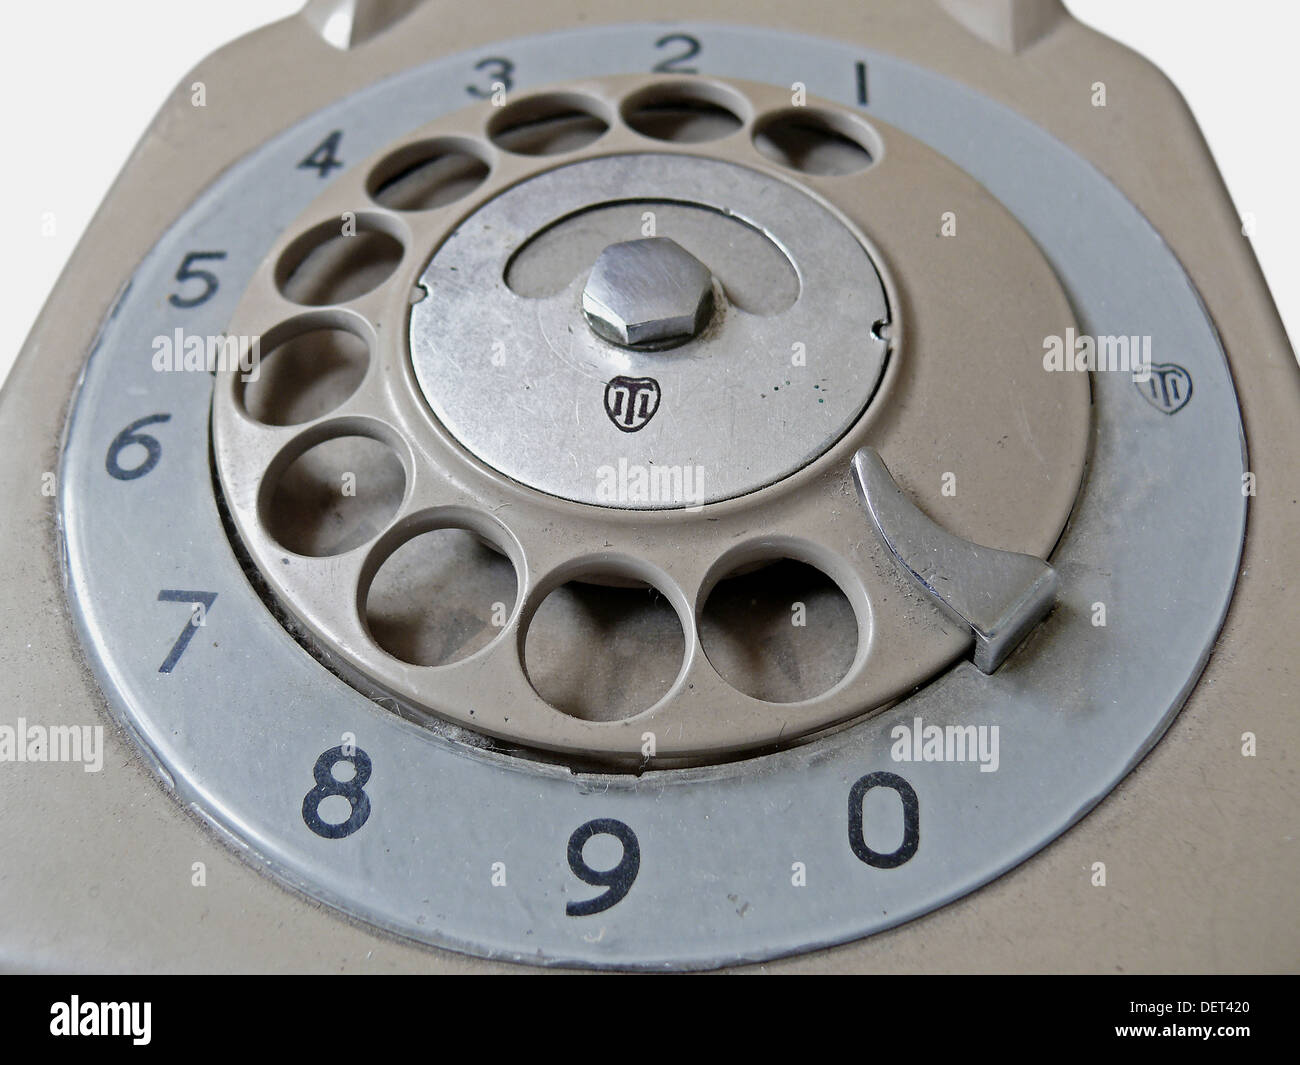 Communications dial of old Bakelite Telephone  Pune, Maharashtra, India - Stock Image